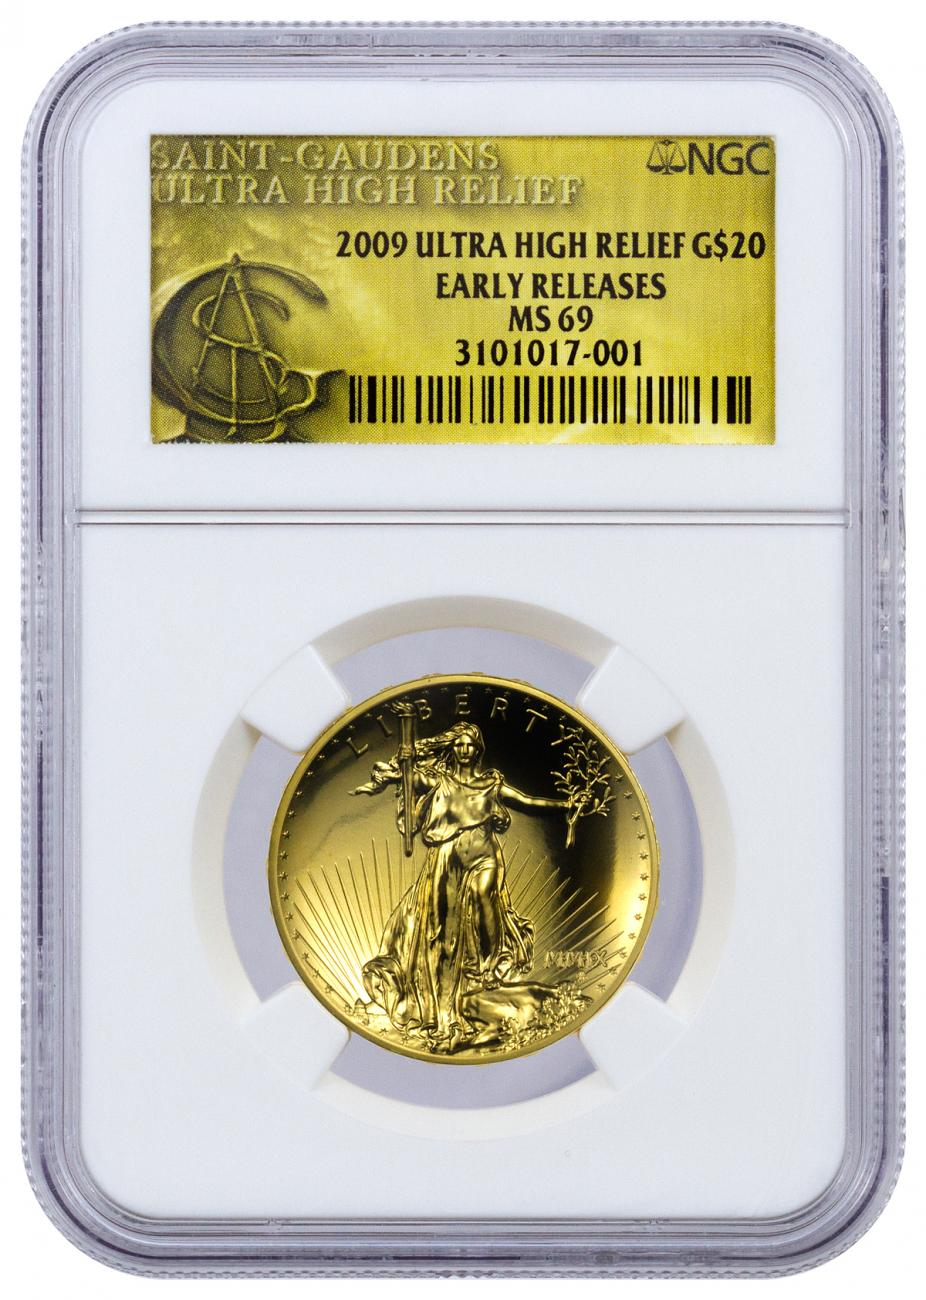 2009 $20 1 oz. Ultra High Relief Gold Double Eagle - NGC MS69 Early Releases